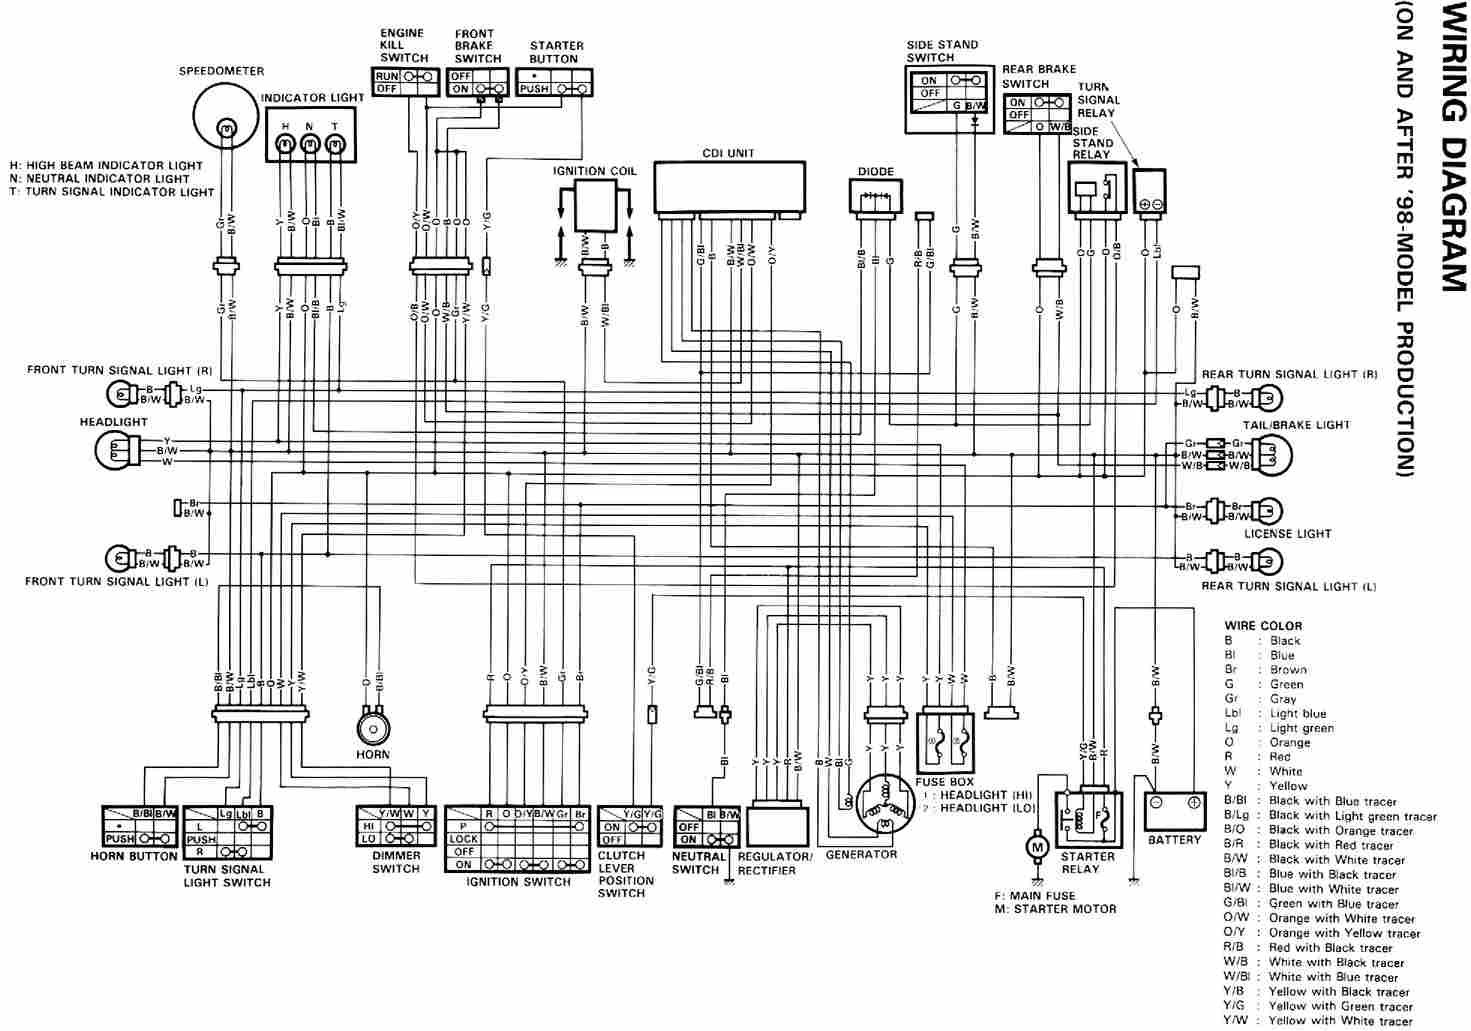 wiring diagram for motorcycle 2005 saab 9 3 stereo suzuki dr 200 gn 250